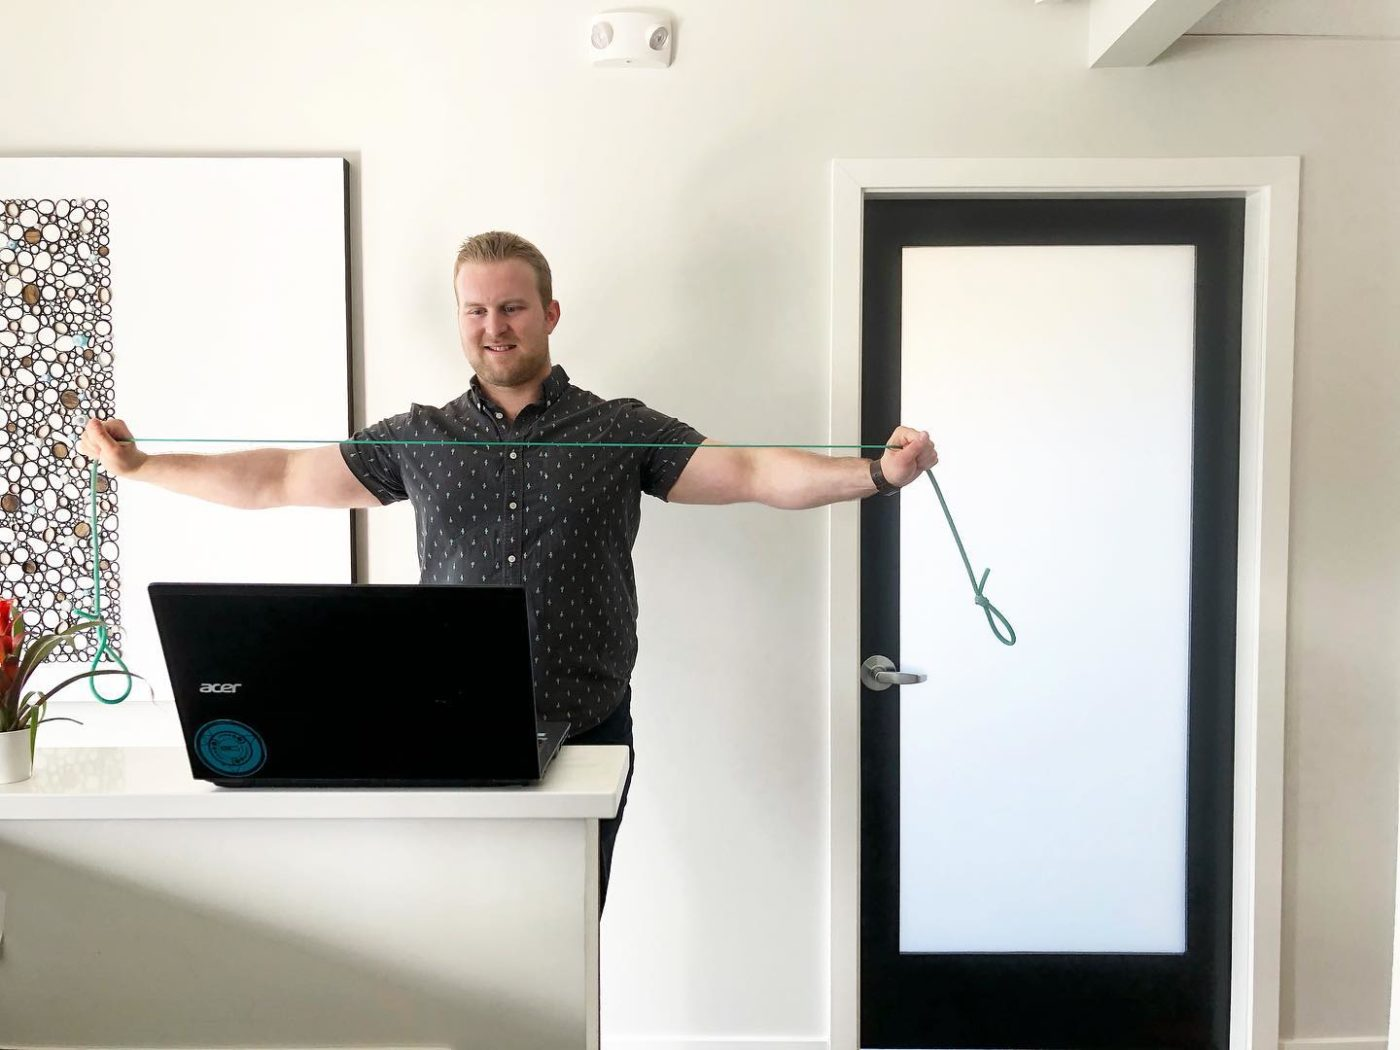 Connor Willis stands in front of the computer video to demonstrate some exercises.